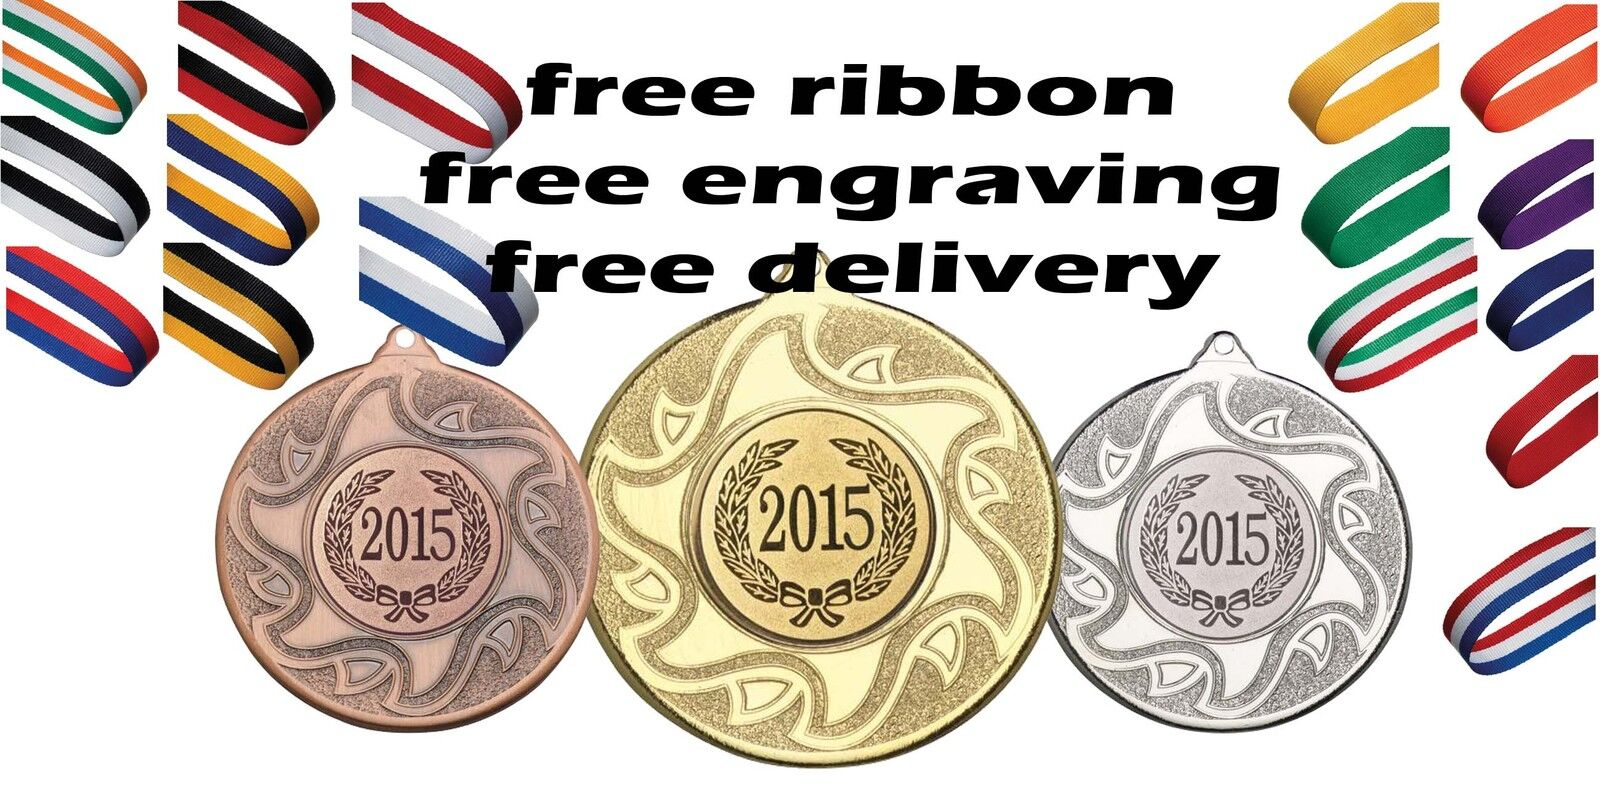 20x 50mm Metal Medal Free Engraving, Ribbon & Kids Climbing Party